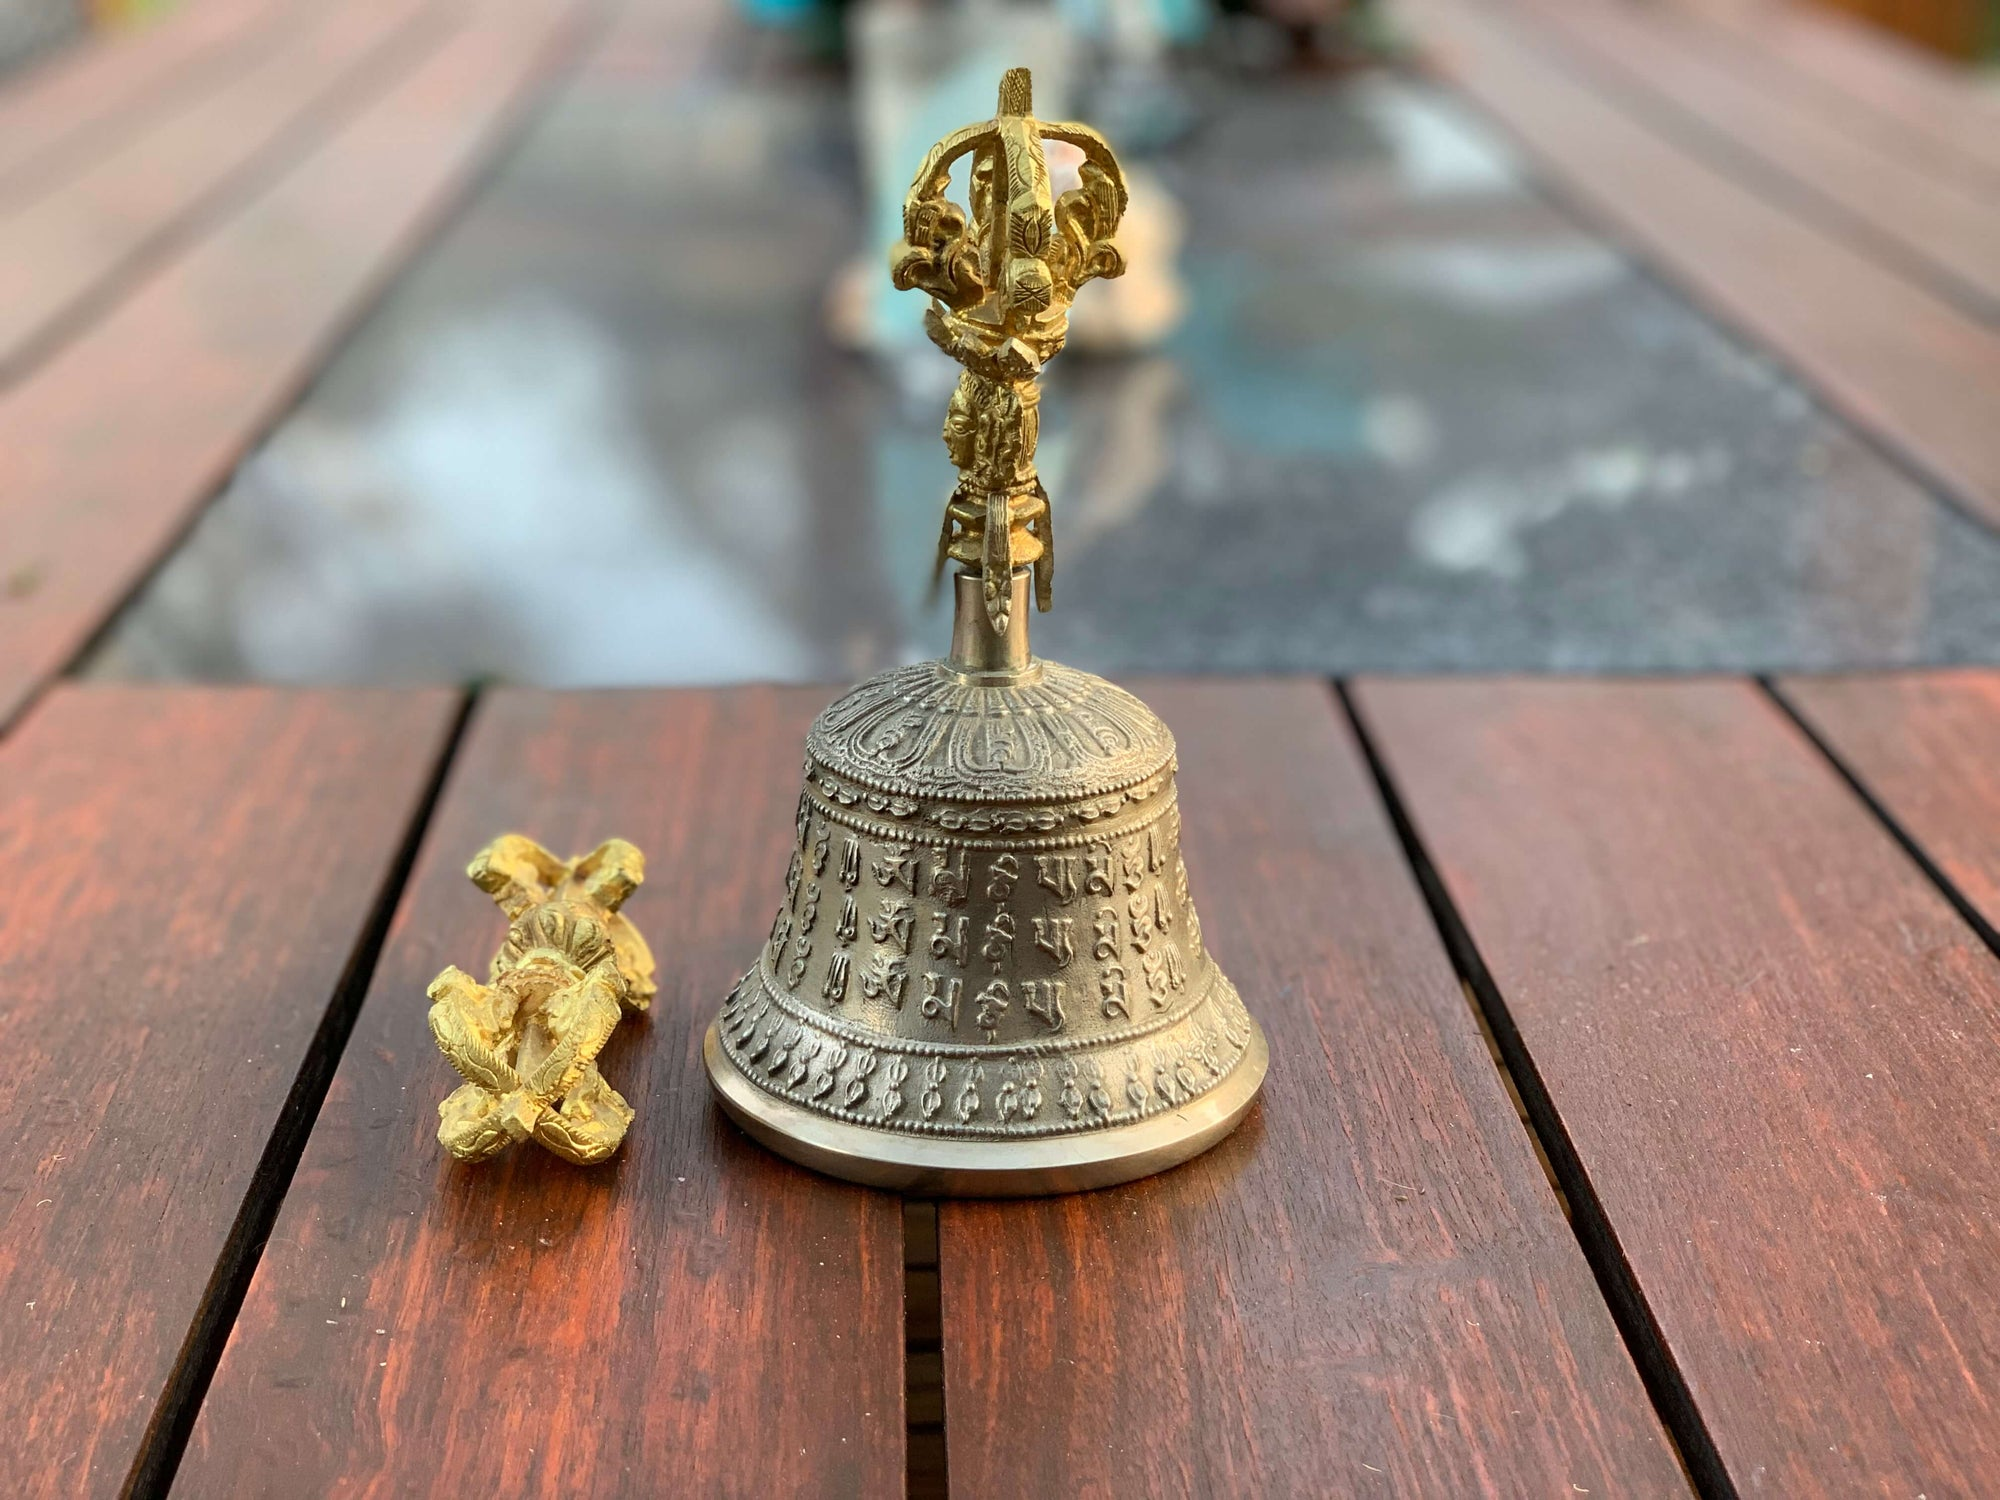 A$129 - BRASS BELL & DORJE SET - HAND MADE IN NEPAL 🇳🇵 0.86KG (1) ISLAND BUDDHA